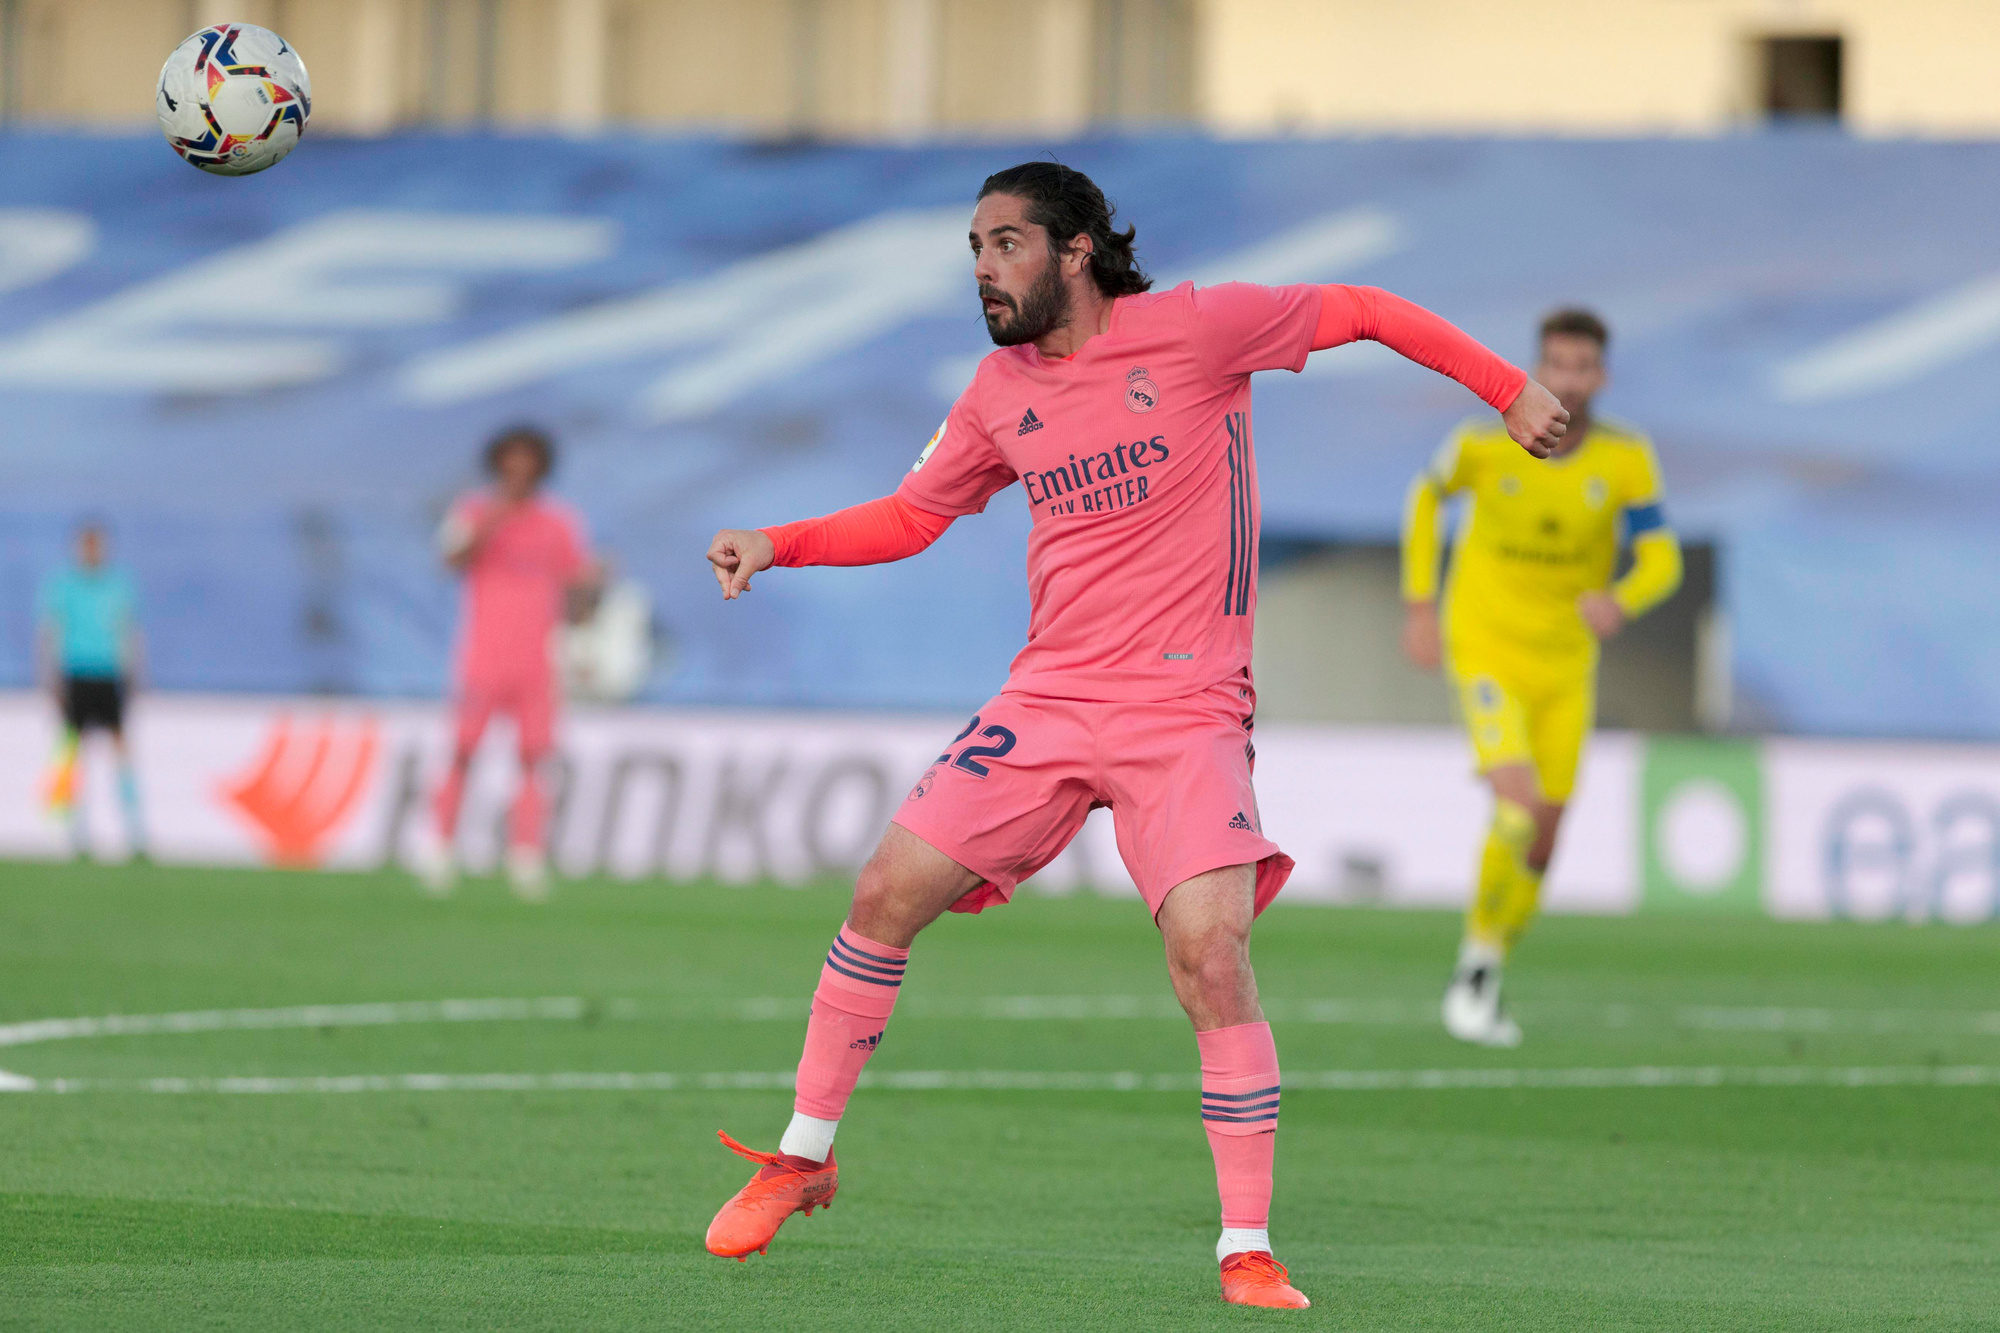 Isco, talent génial, mais jamais indiscutable au Real., SIPAUSACOLLECTIONS